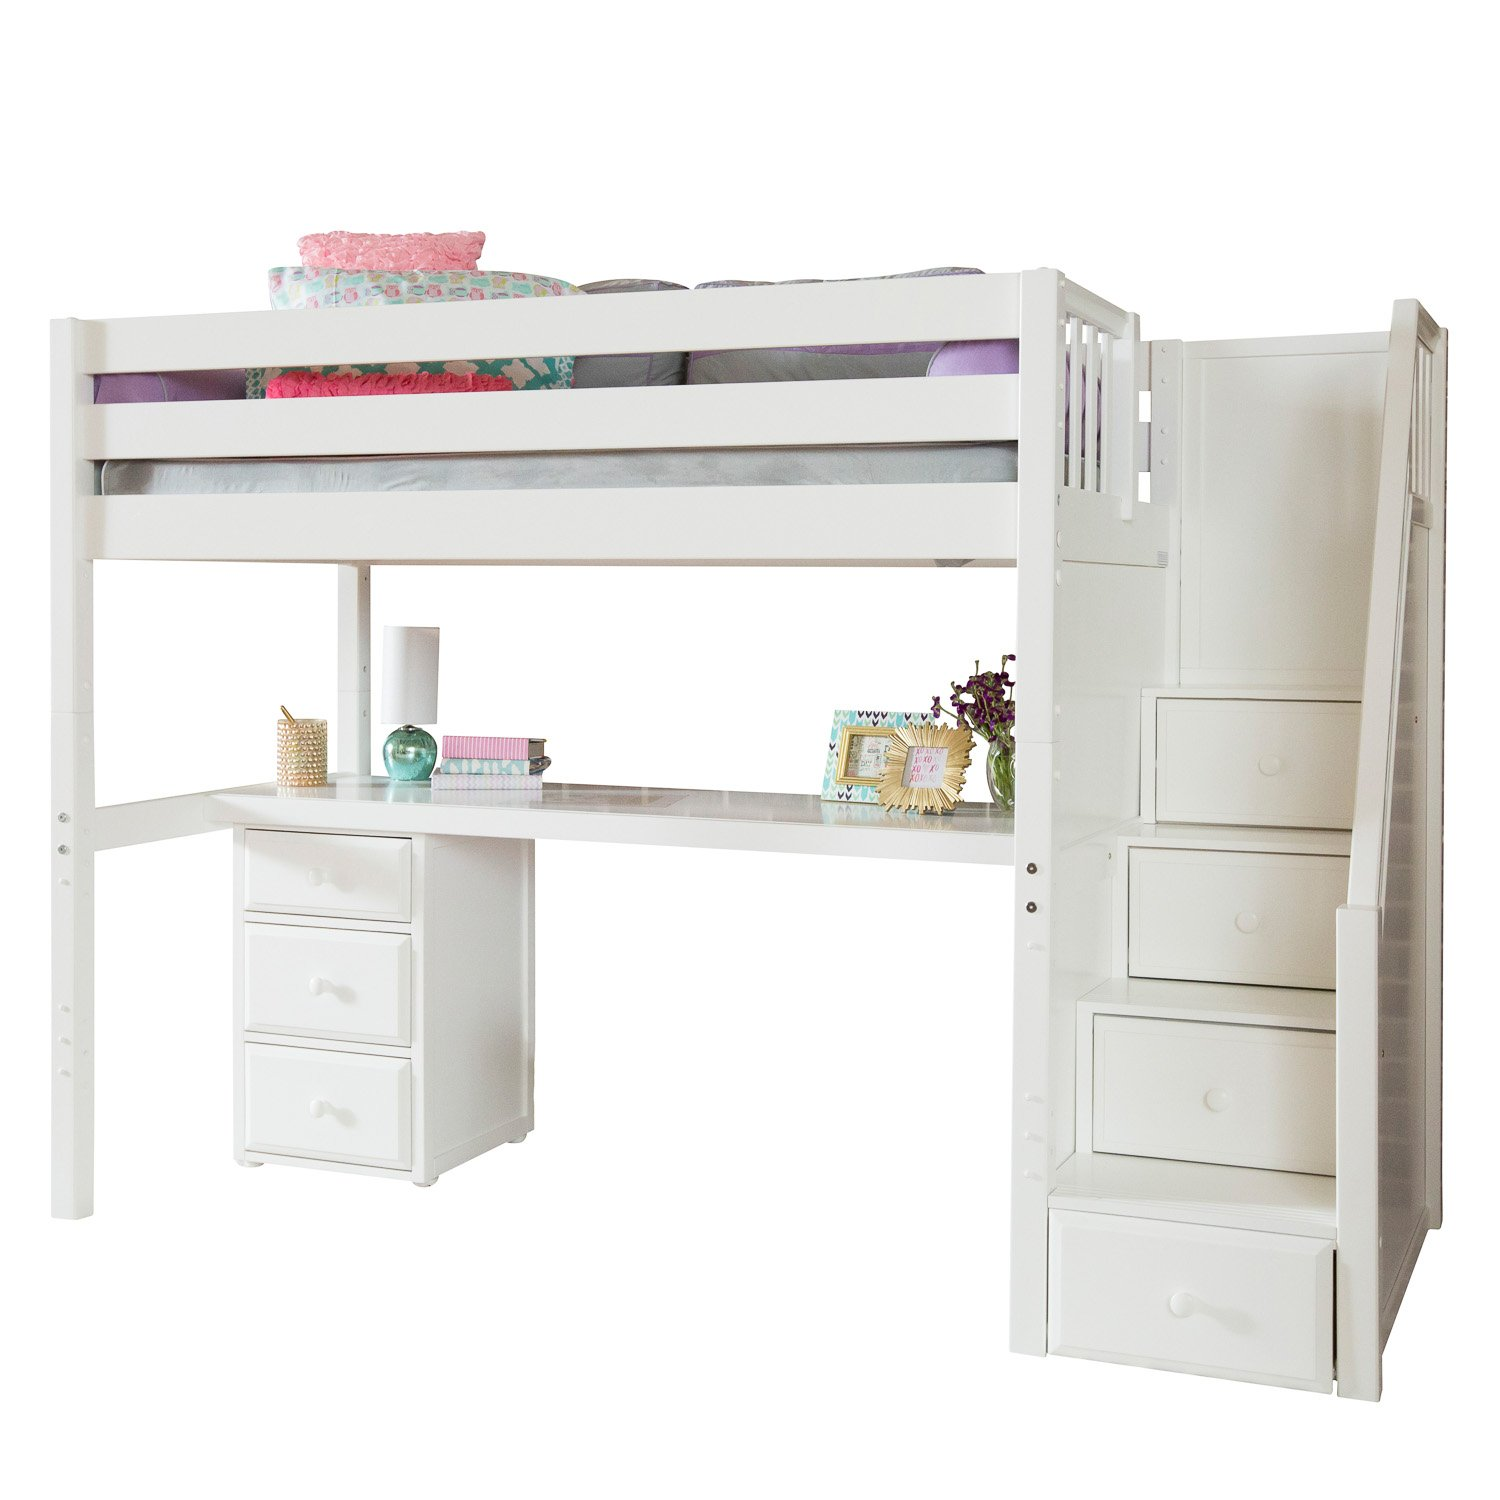 Maxtrix Solid Hardwood Twin-Size Low Loft Bed with Storage Staircase Entry, Integrated Desk, and 3 1/2 Drawer Dresser, White